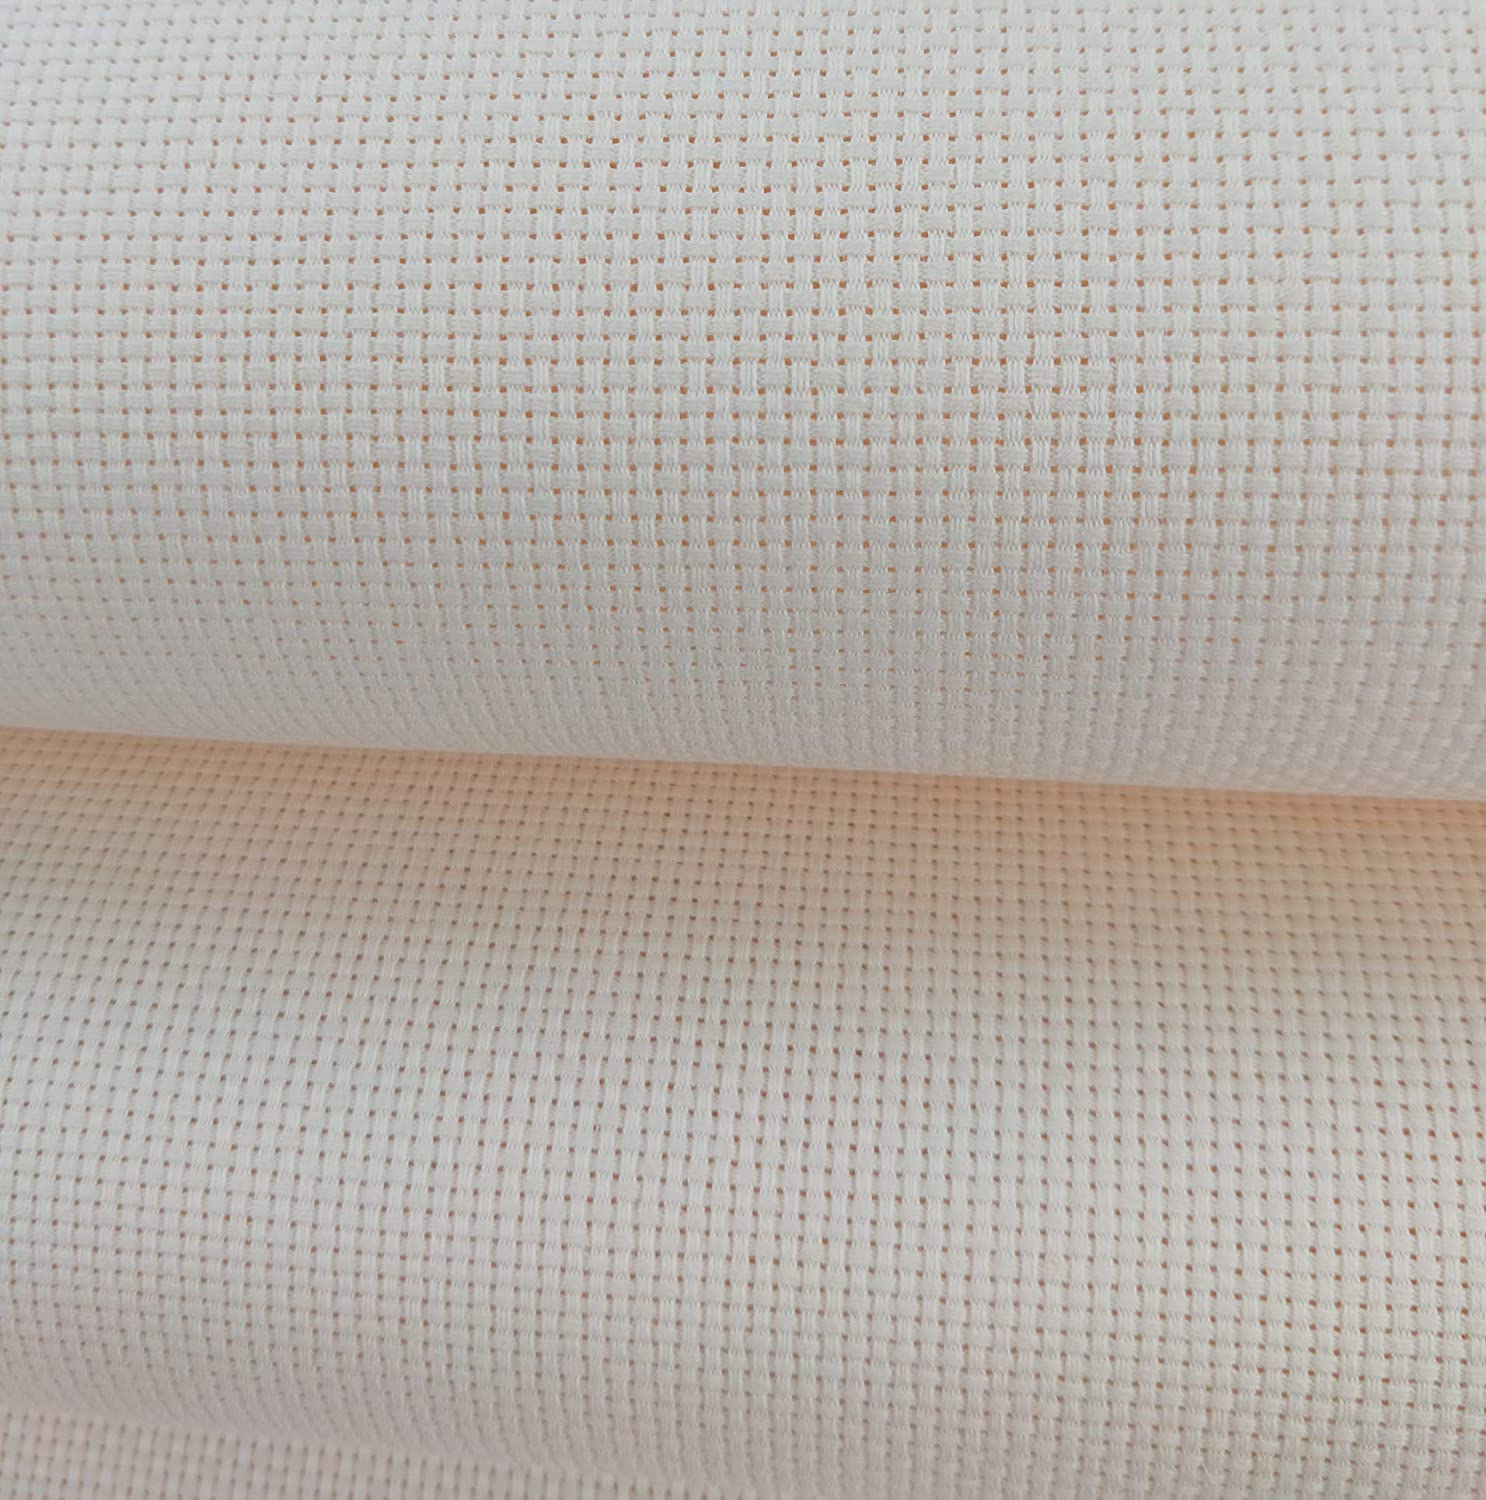 Beige Cream 19 x 28 11CT Counted Cotton Aida Cloth Cross Stitch Fabric